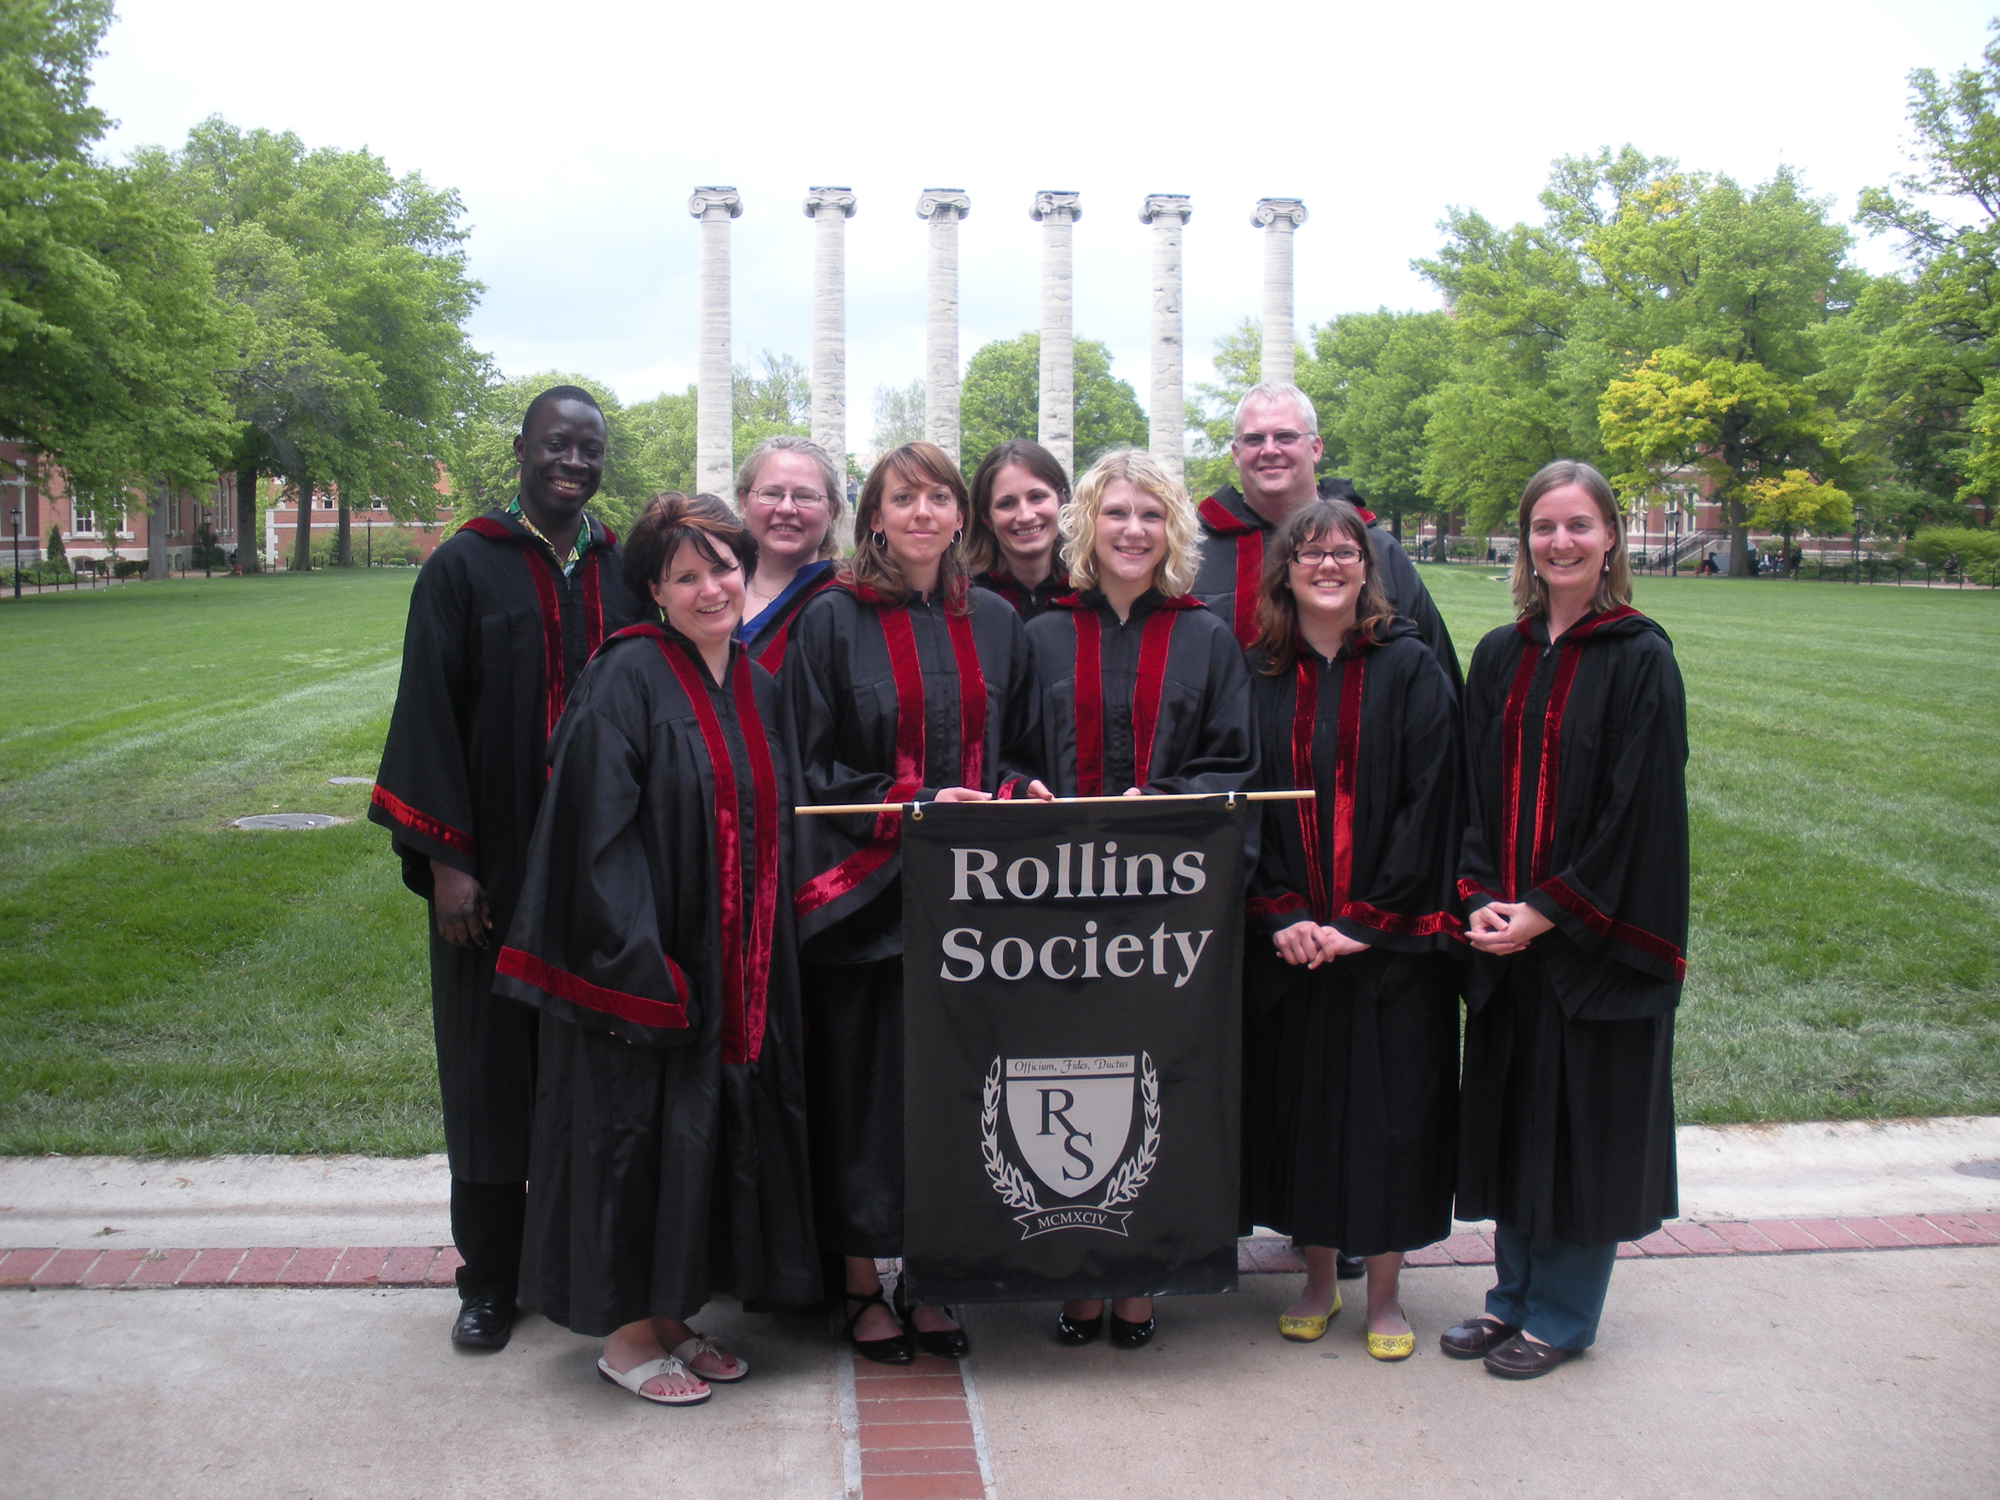 Rollins Society Class of 2010